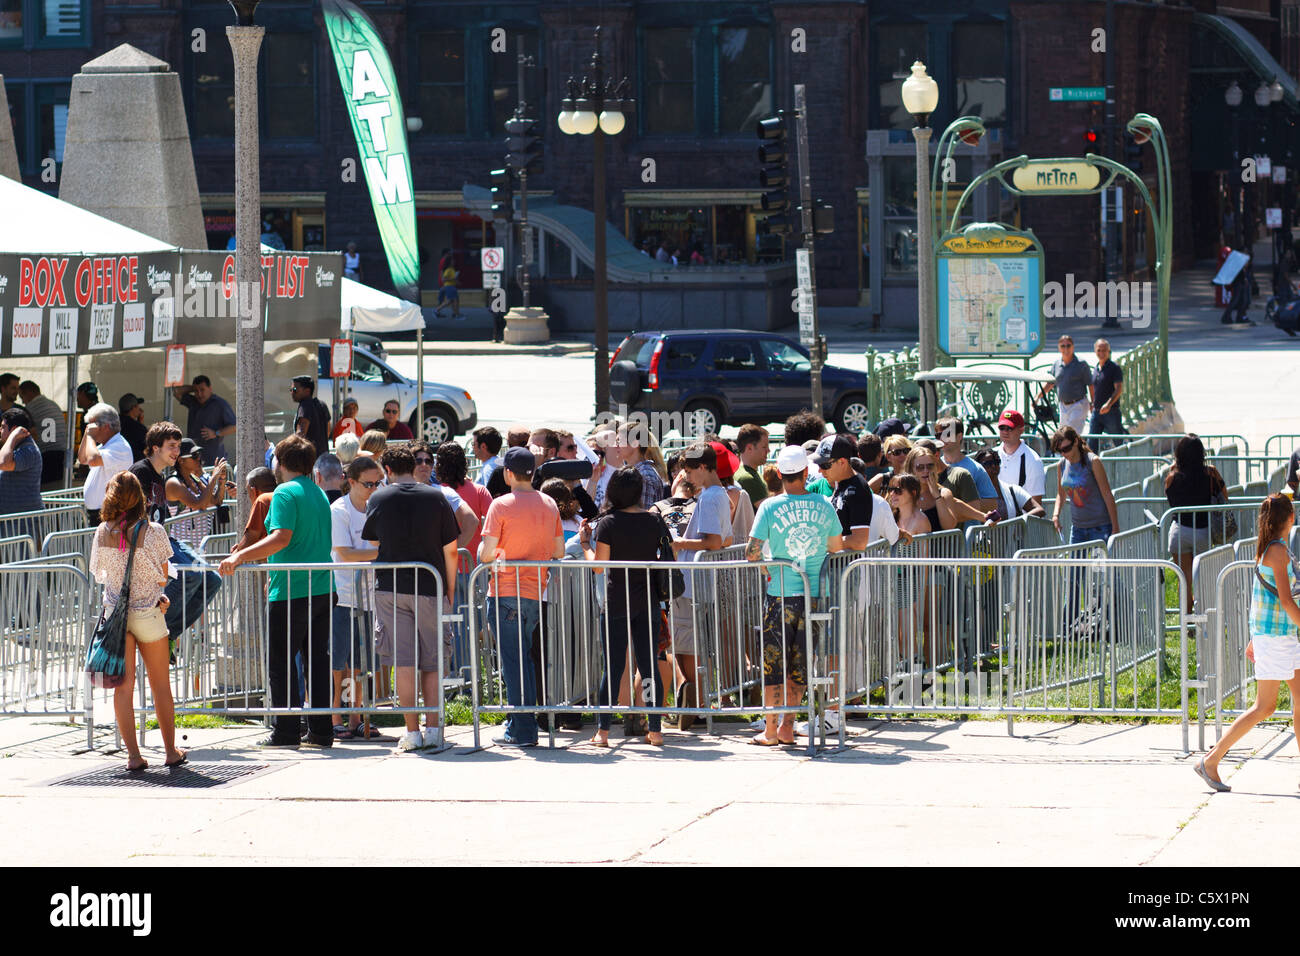 People waiting in line to buy tickets to Lollapalooza 2011 in Chicago, Illinois - Stock Image